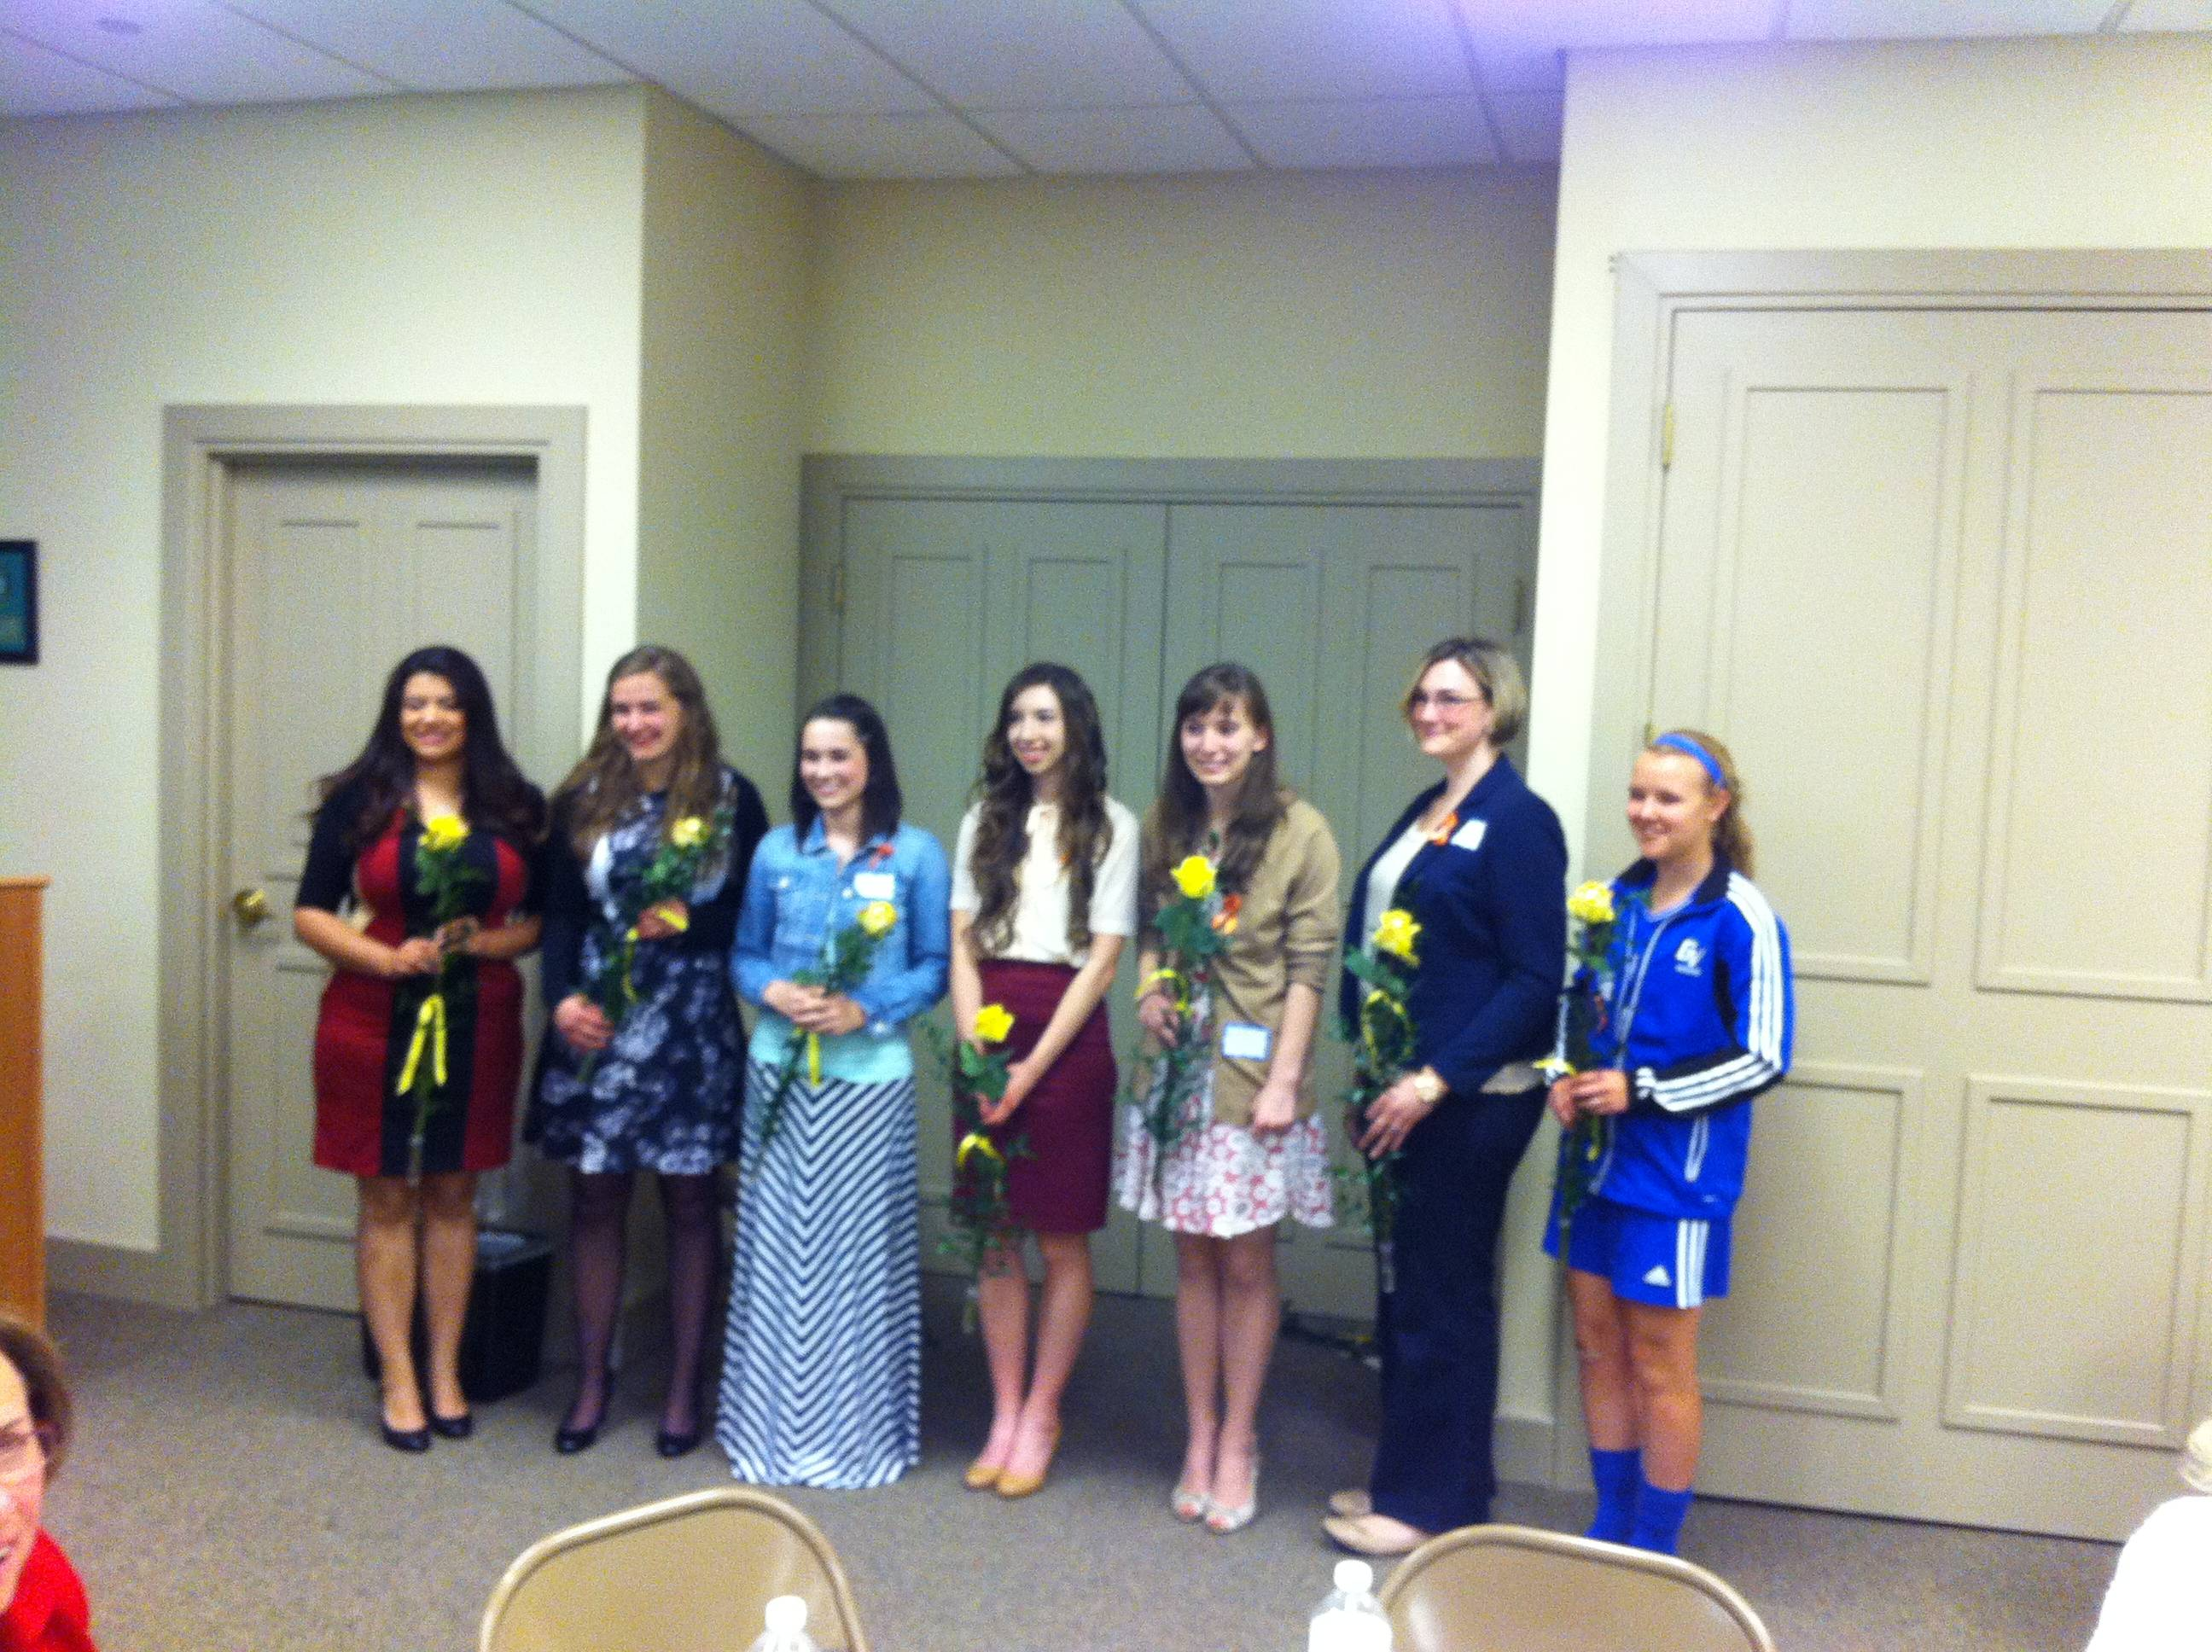 The 2014 Zonta Club scholarship winners include, from left, Mayra Loera, Madeline Horton, Veronica Seawall, Alexis Guttilla, Monica Zimmerman, Kristin Burke and Hallie McQueeny. Not pictured: Danielle Brown and Anastasia Mistak.